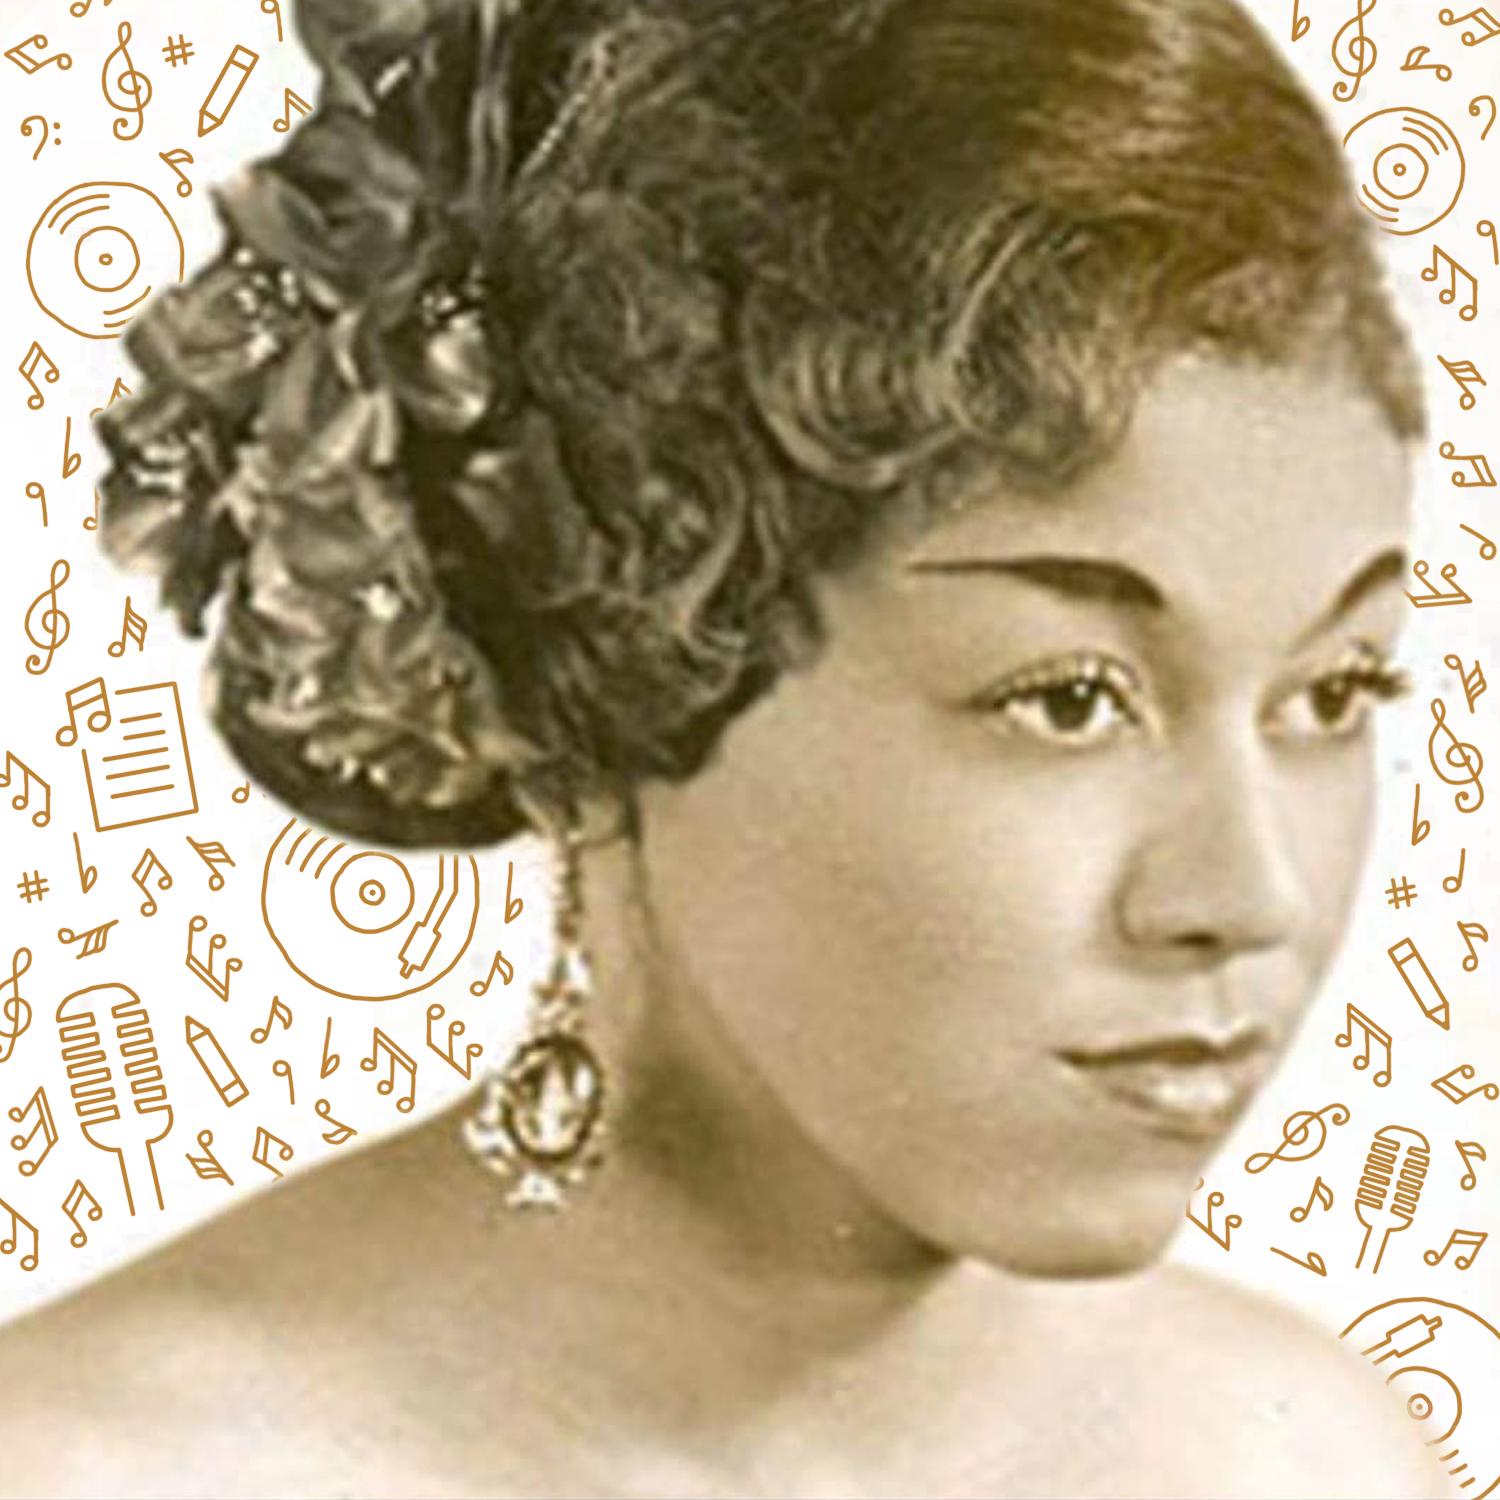 """Rose Marie McCoy   As an African-American woman living in the 1960s, McCoy accomplished remarkable feats: her song """"Tryin' to Get to You"""" was performed by Elvis Presley on his debut album and soared to the top of the charts, and she went on to write for the likes of James Brown, Nat King Cole, and Johnny Mathis.In total, she wrote approximately 850 songs, a shocking number for someone so few have heard of."""